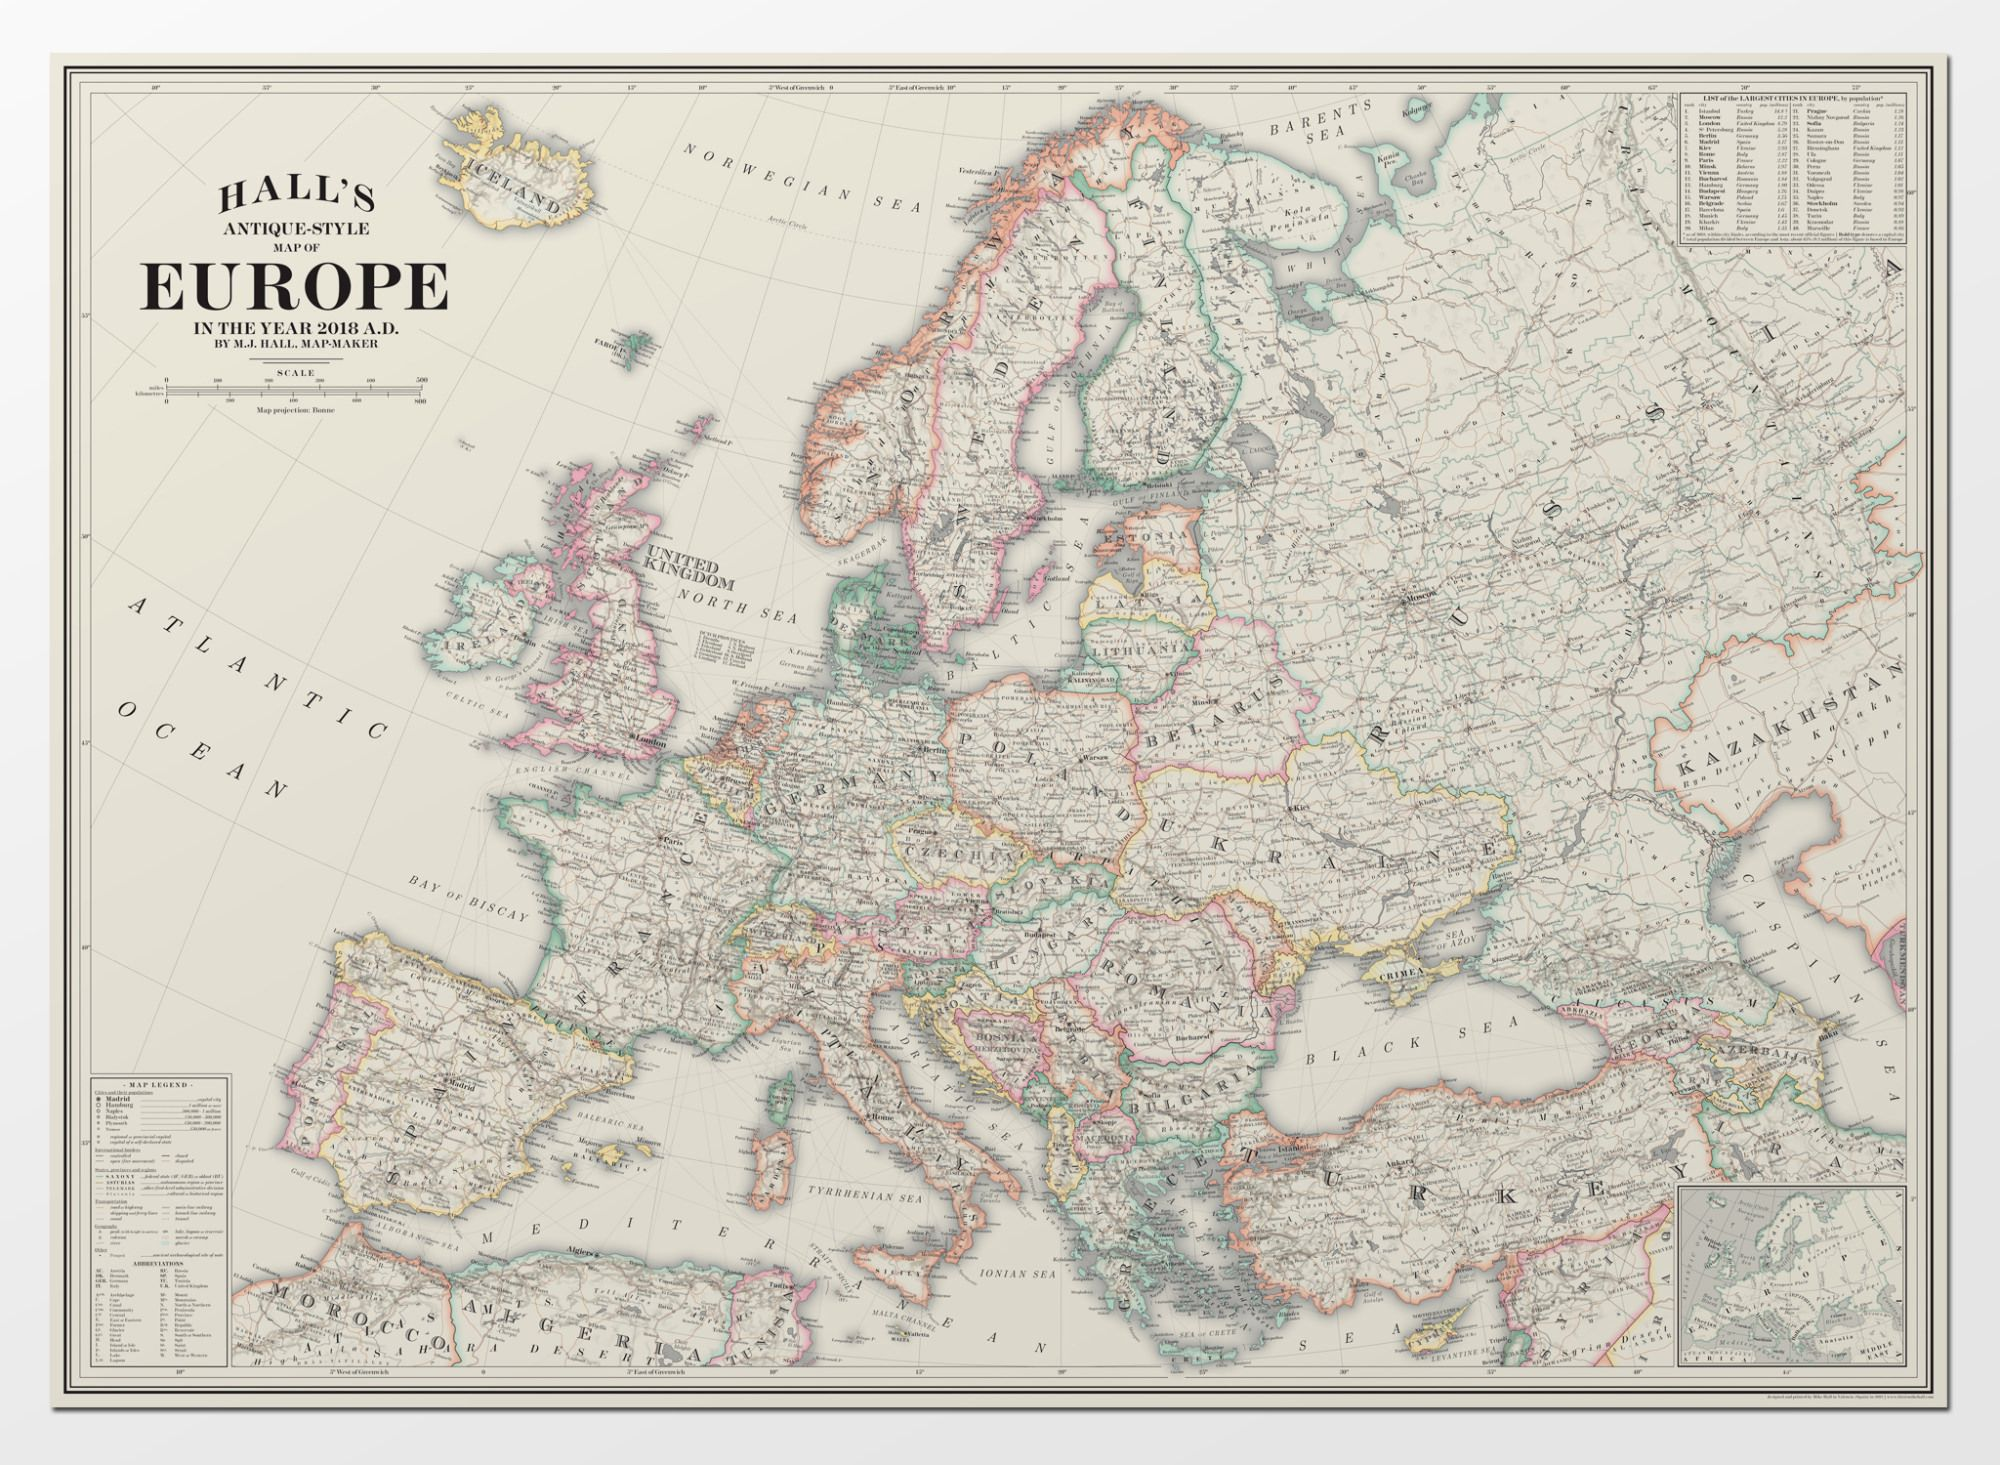 old style map of europe Antique Style Map of Europe for 2018 / by Mike Hall, map designer